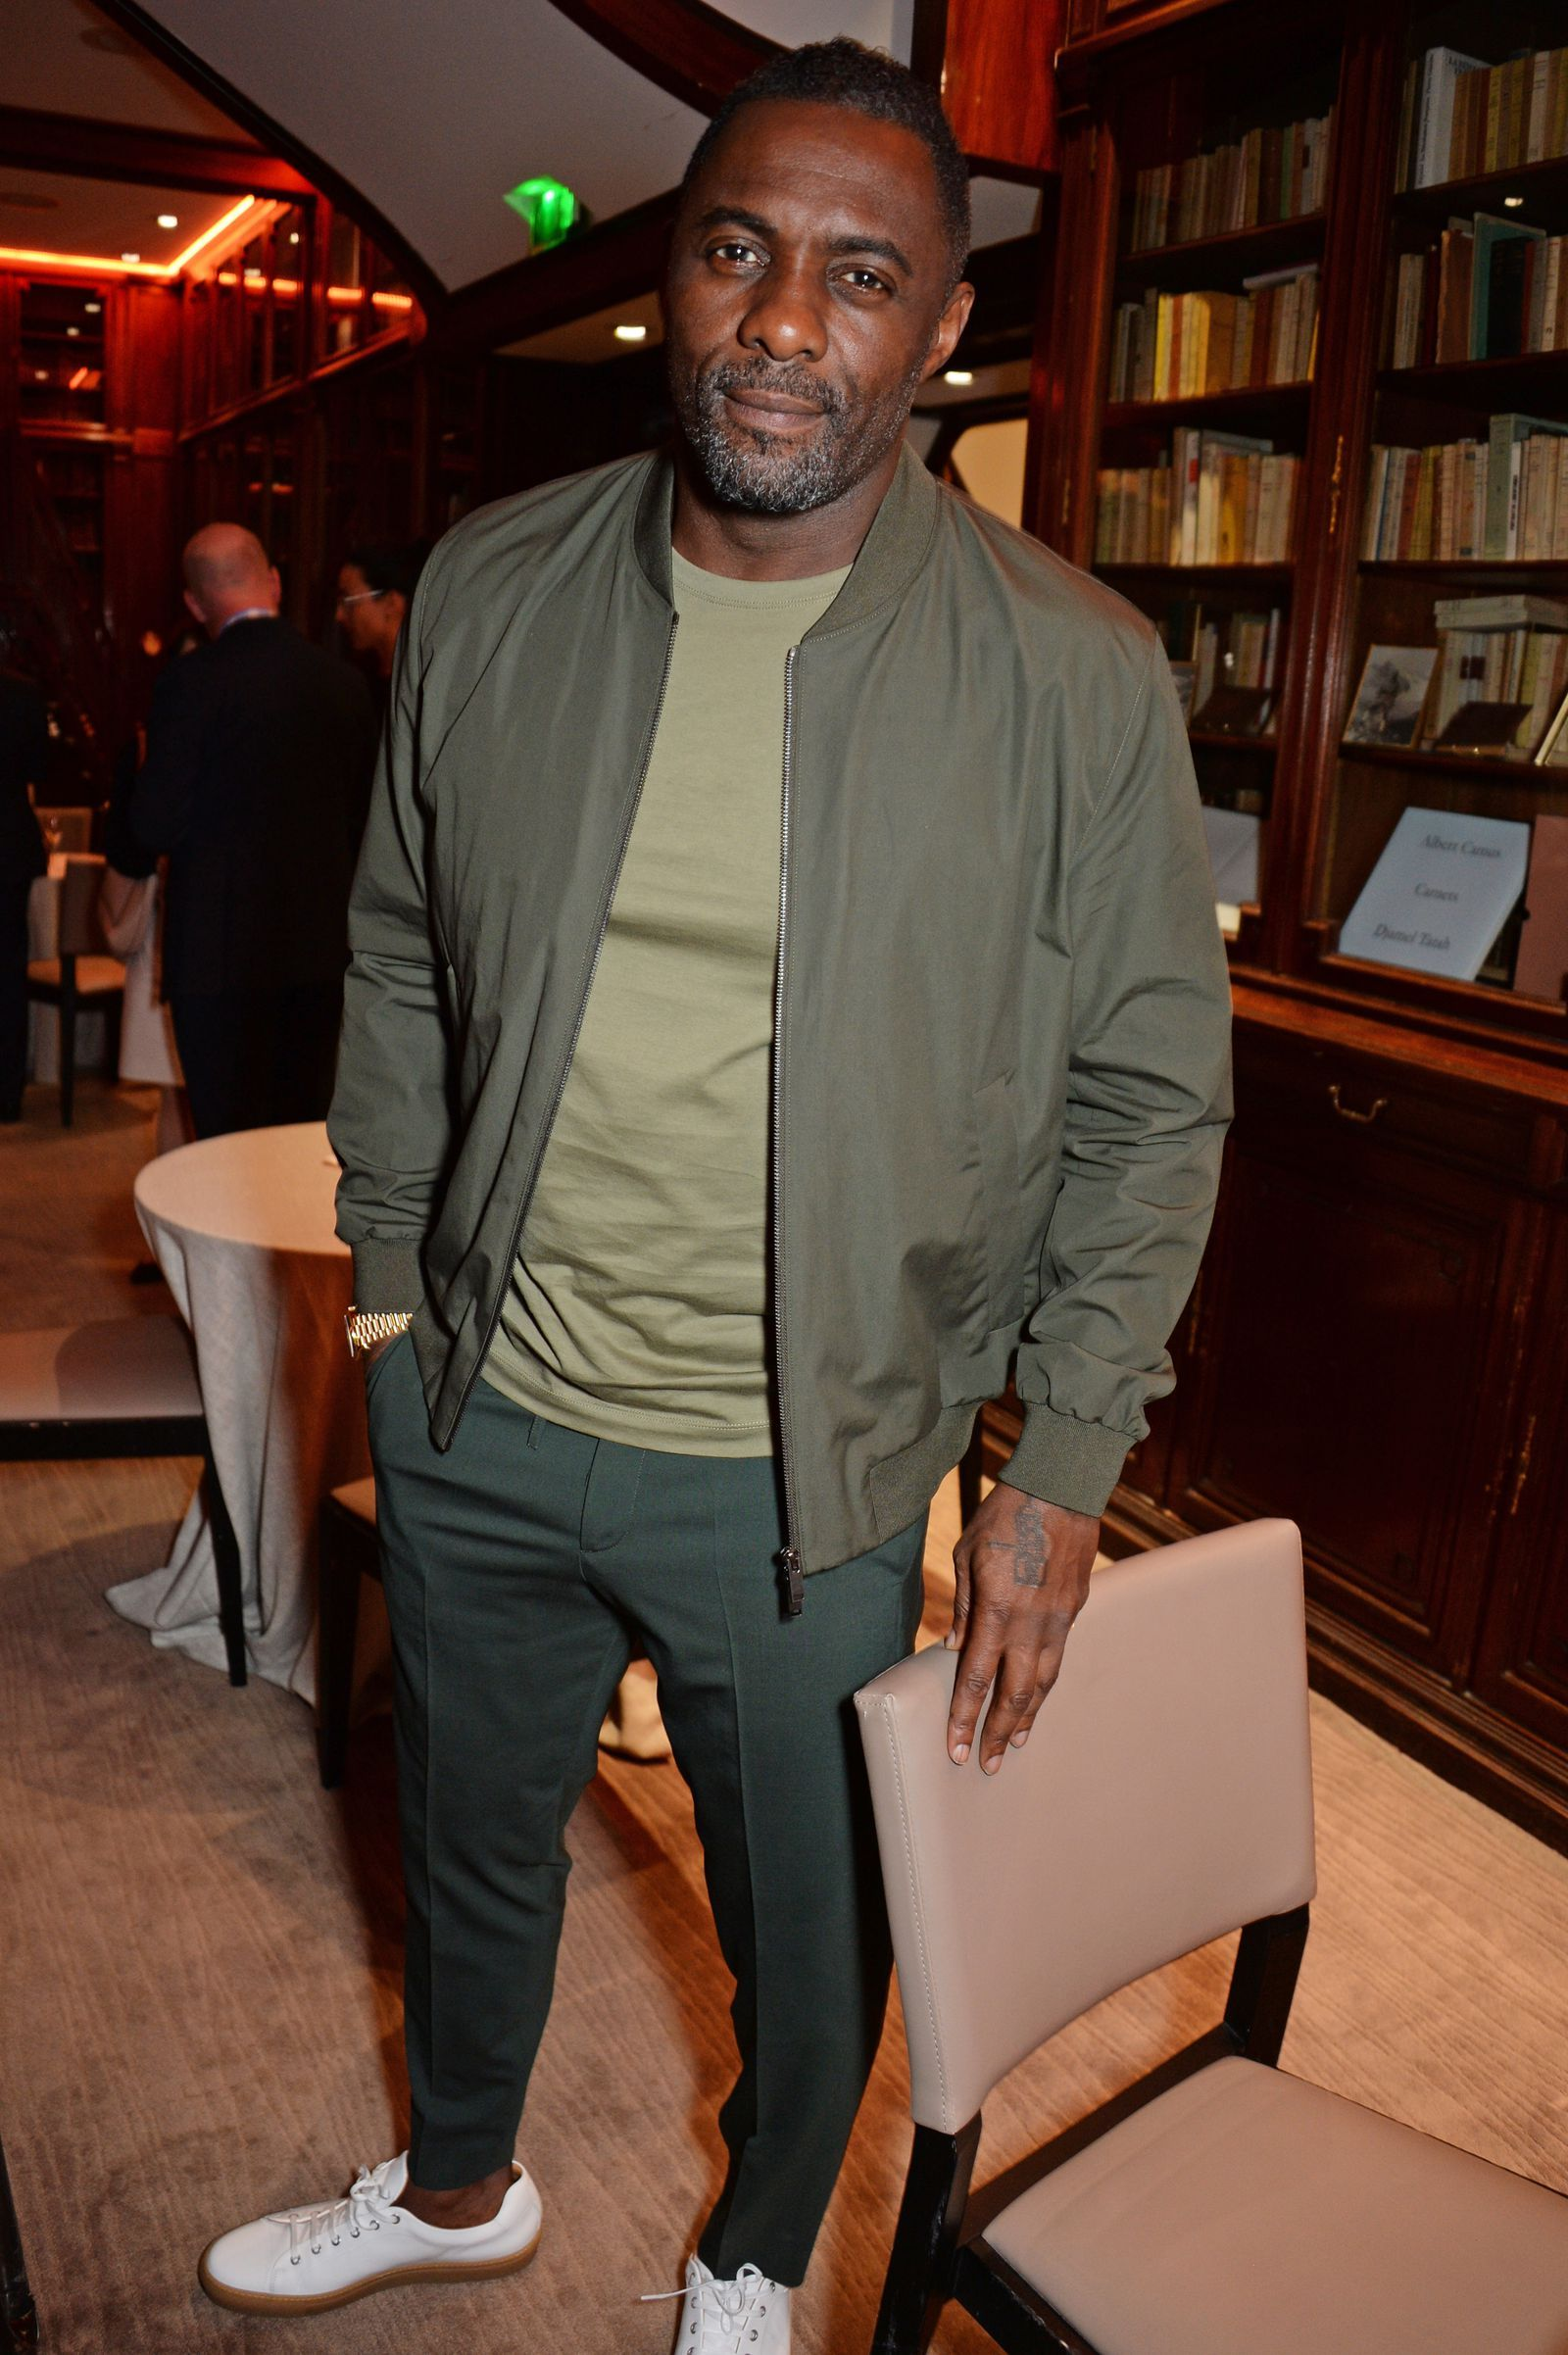 Khaki Green Bomber and Crew Neck T-Shirt with Khaki Green Dress Trousers  and White Leather Gum Sole Sneakers f01c965ea